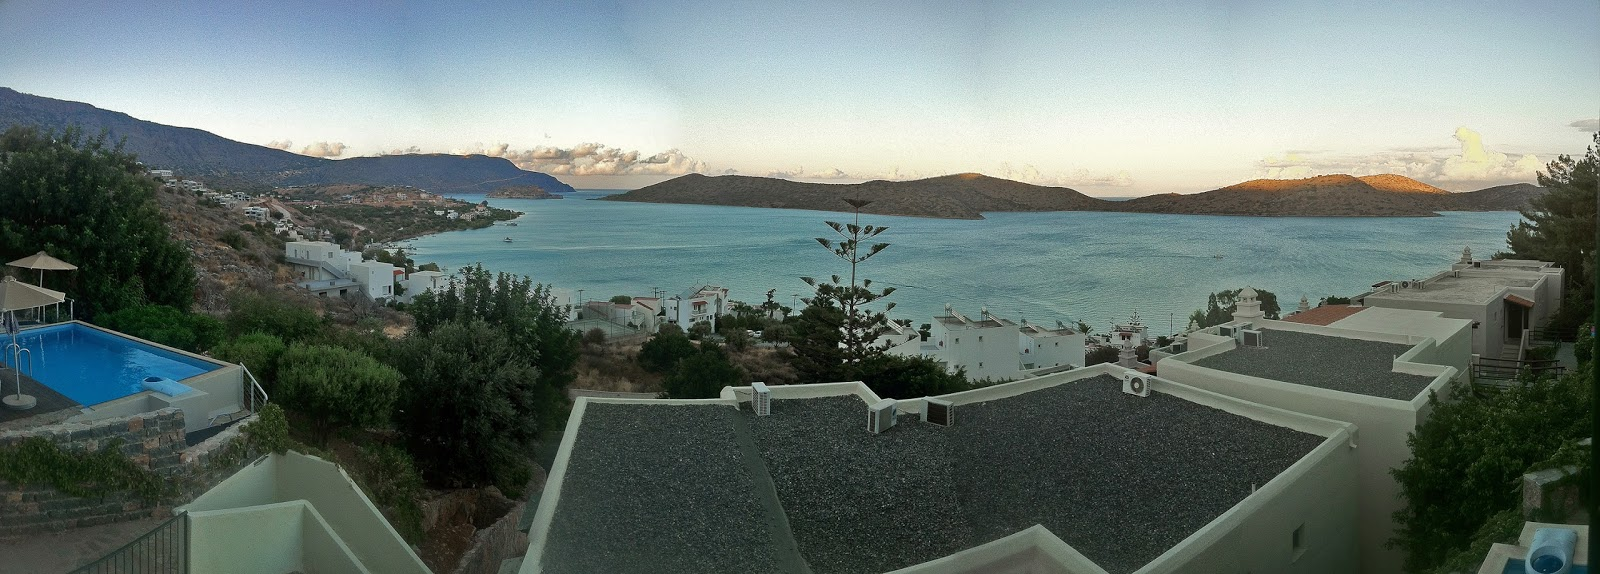 View of Elounda Bay in Crete Greece